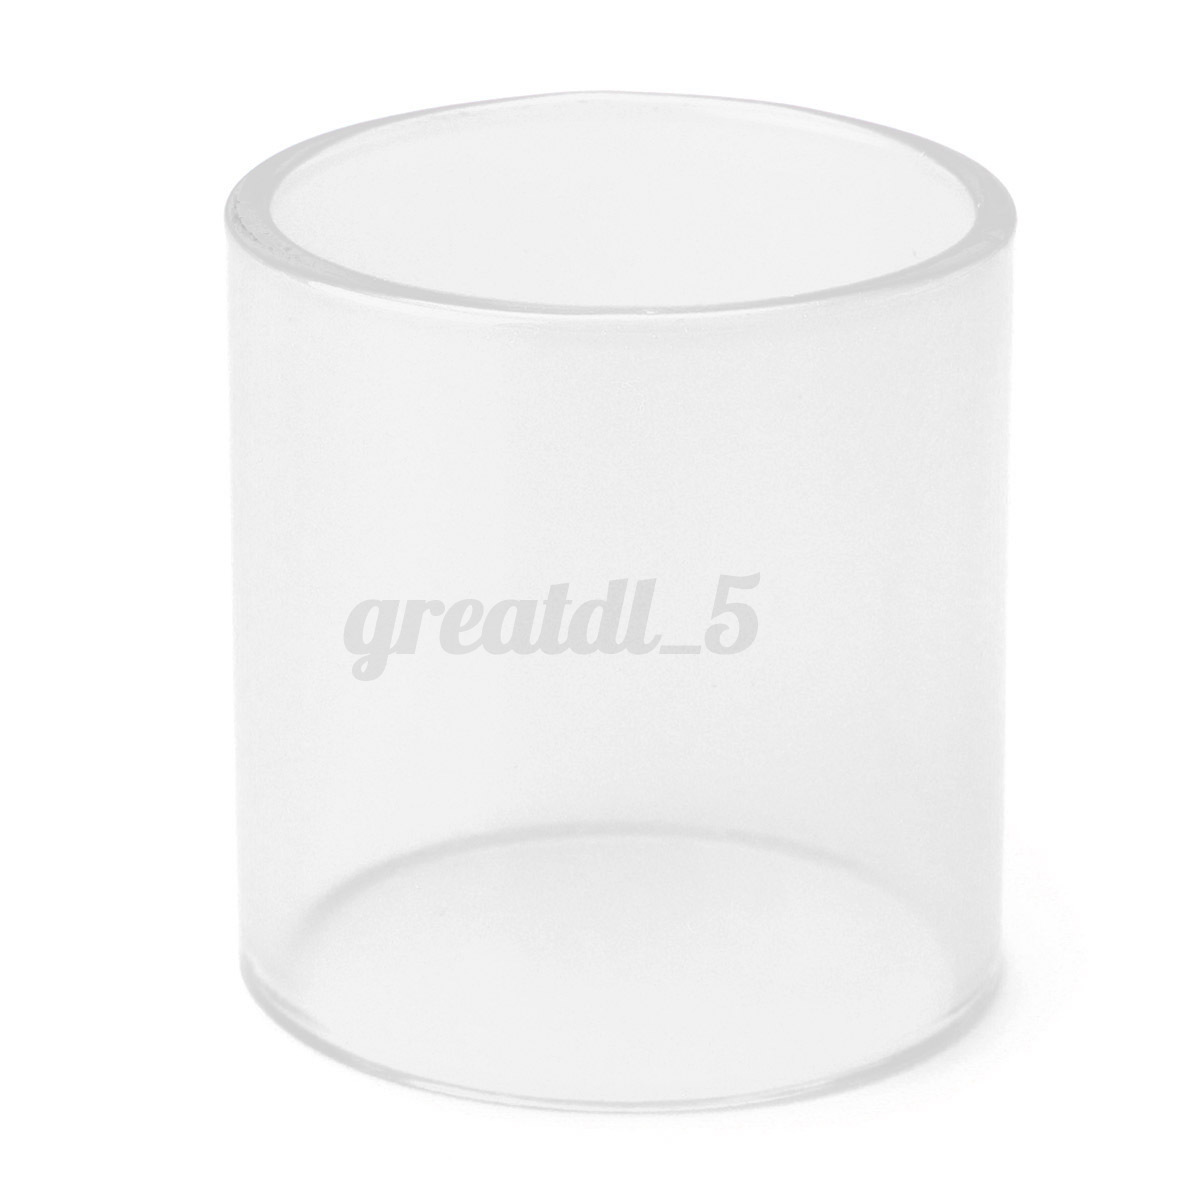 pyrex replacement clear glass - photo #24